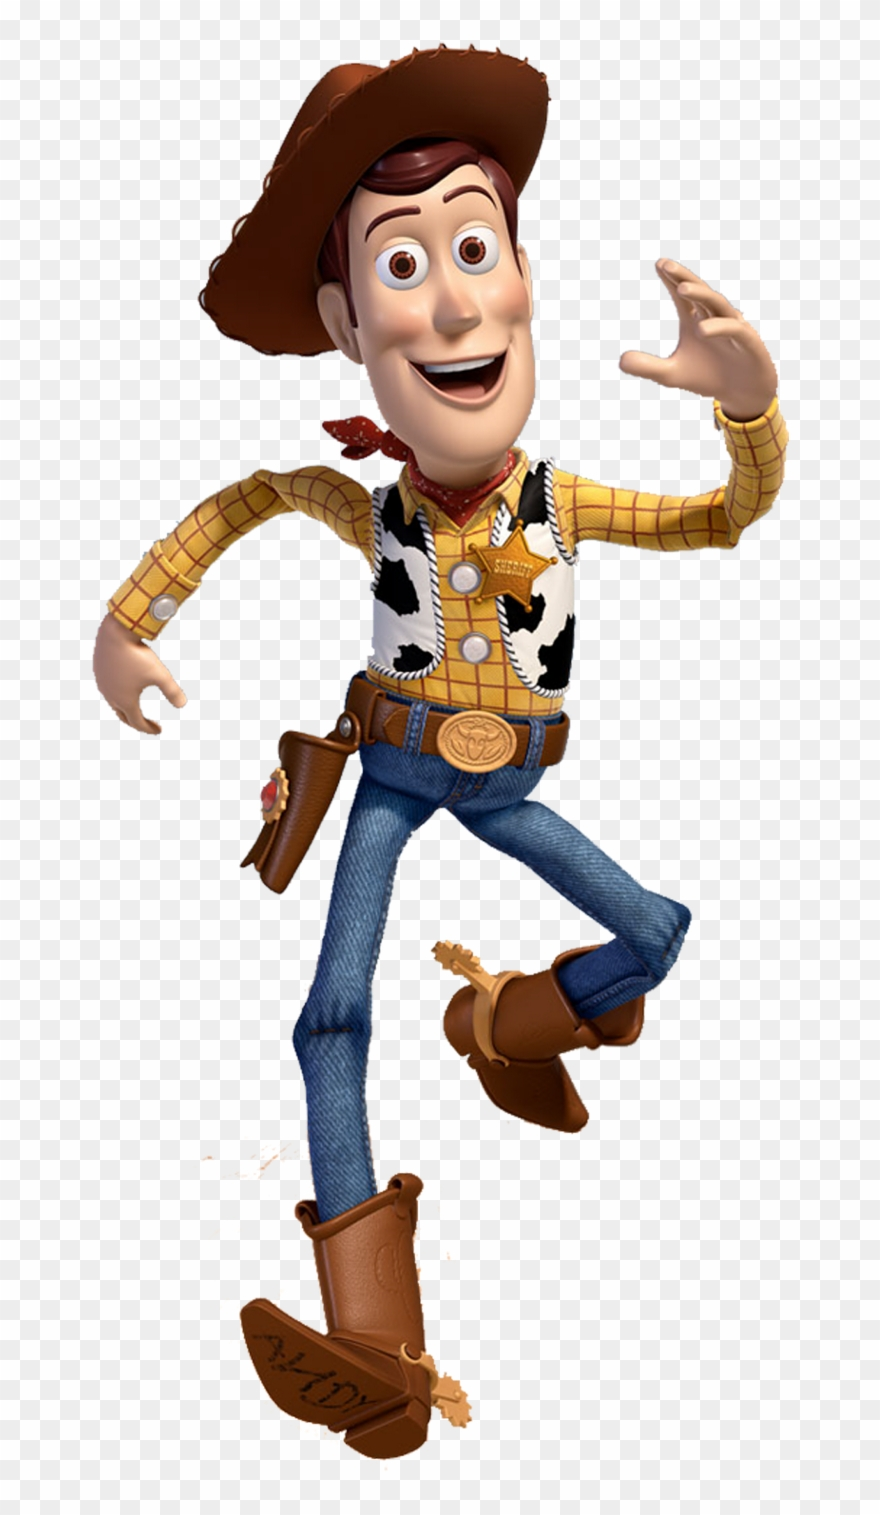 Toy story personagens clipart image royalty free stock Woody Toy Story Characters Clipart - Toy Story 3 - Png ... image royalty free stock